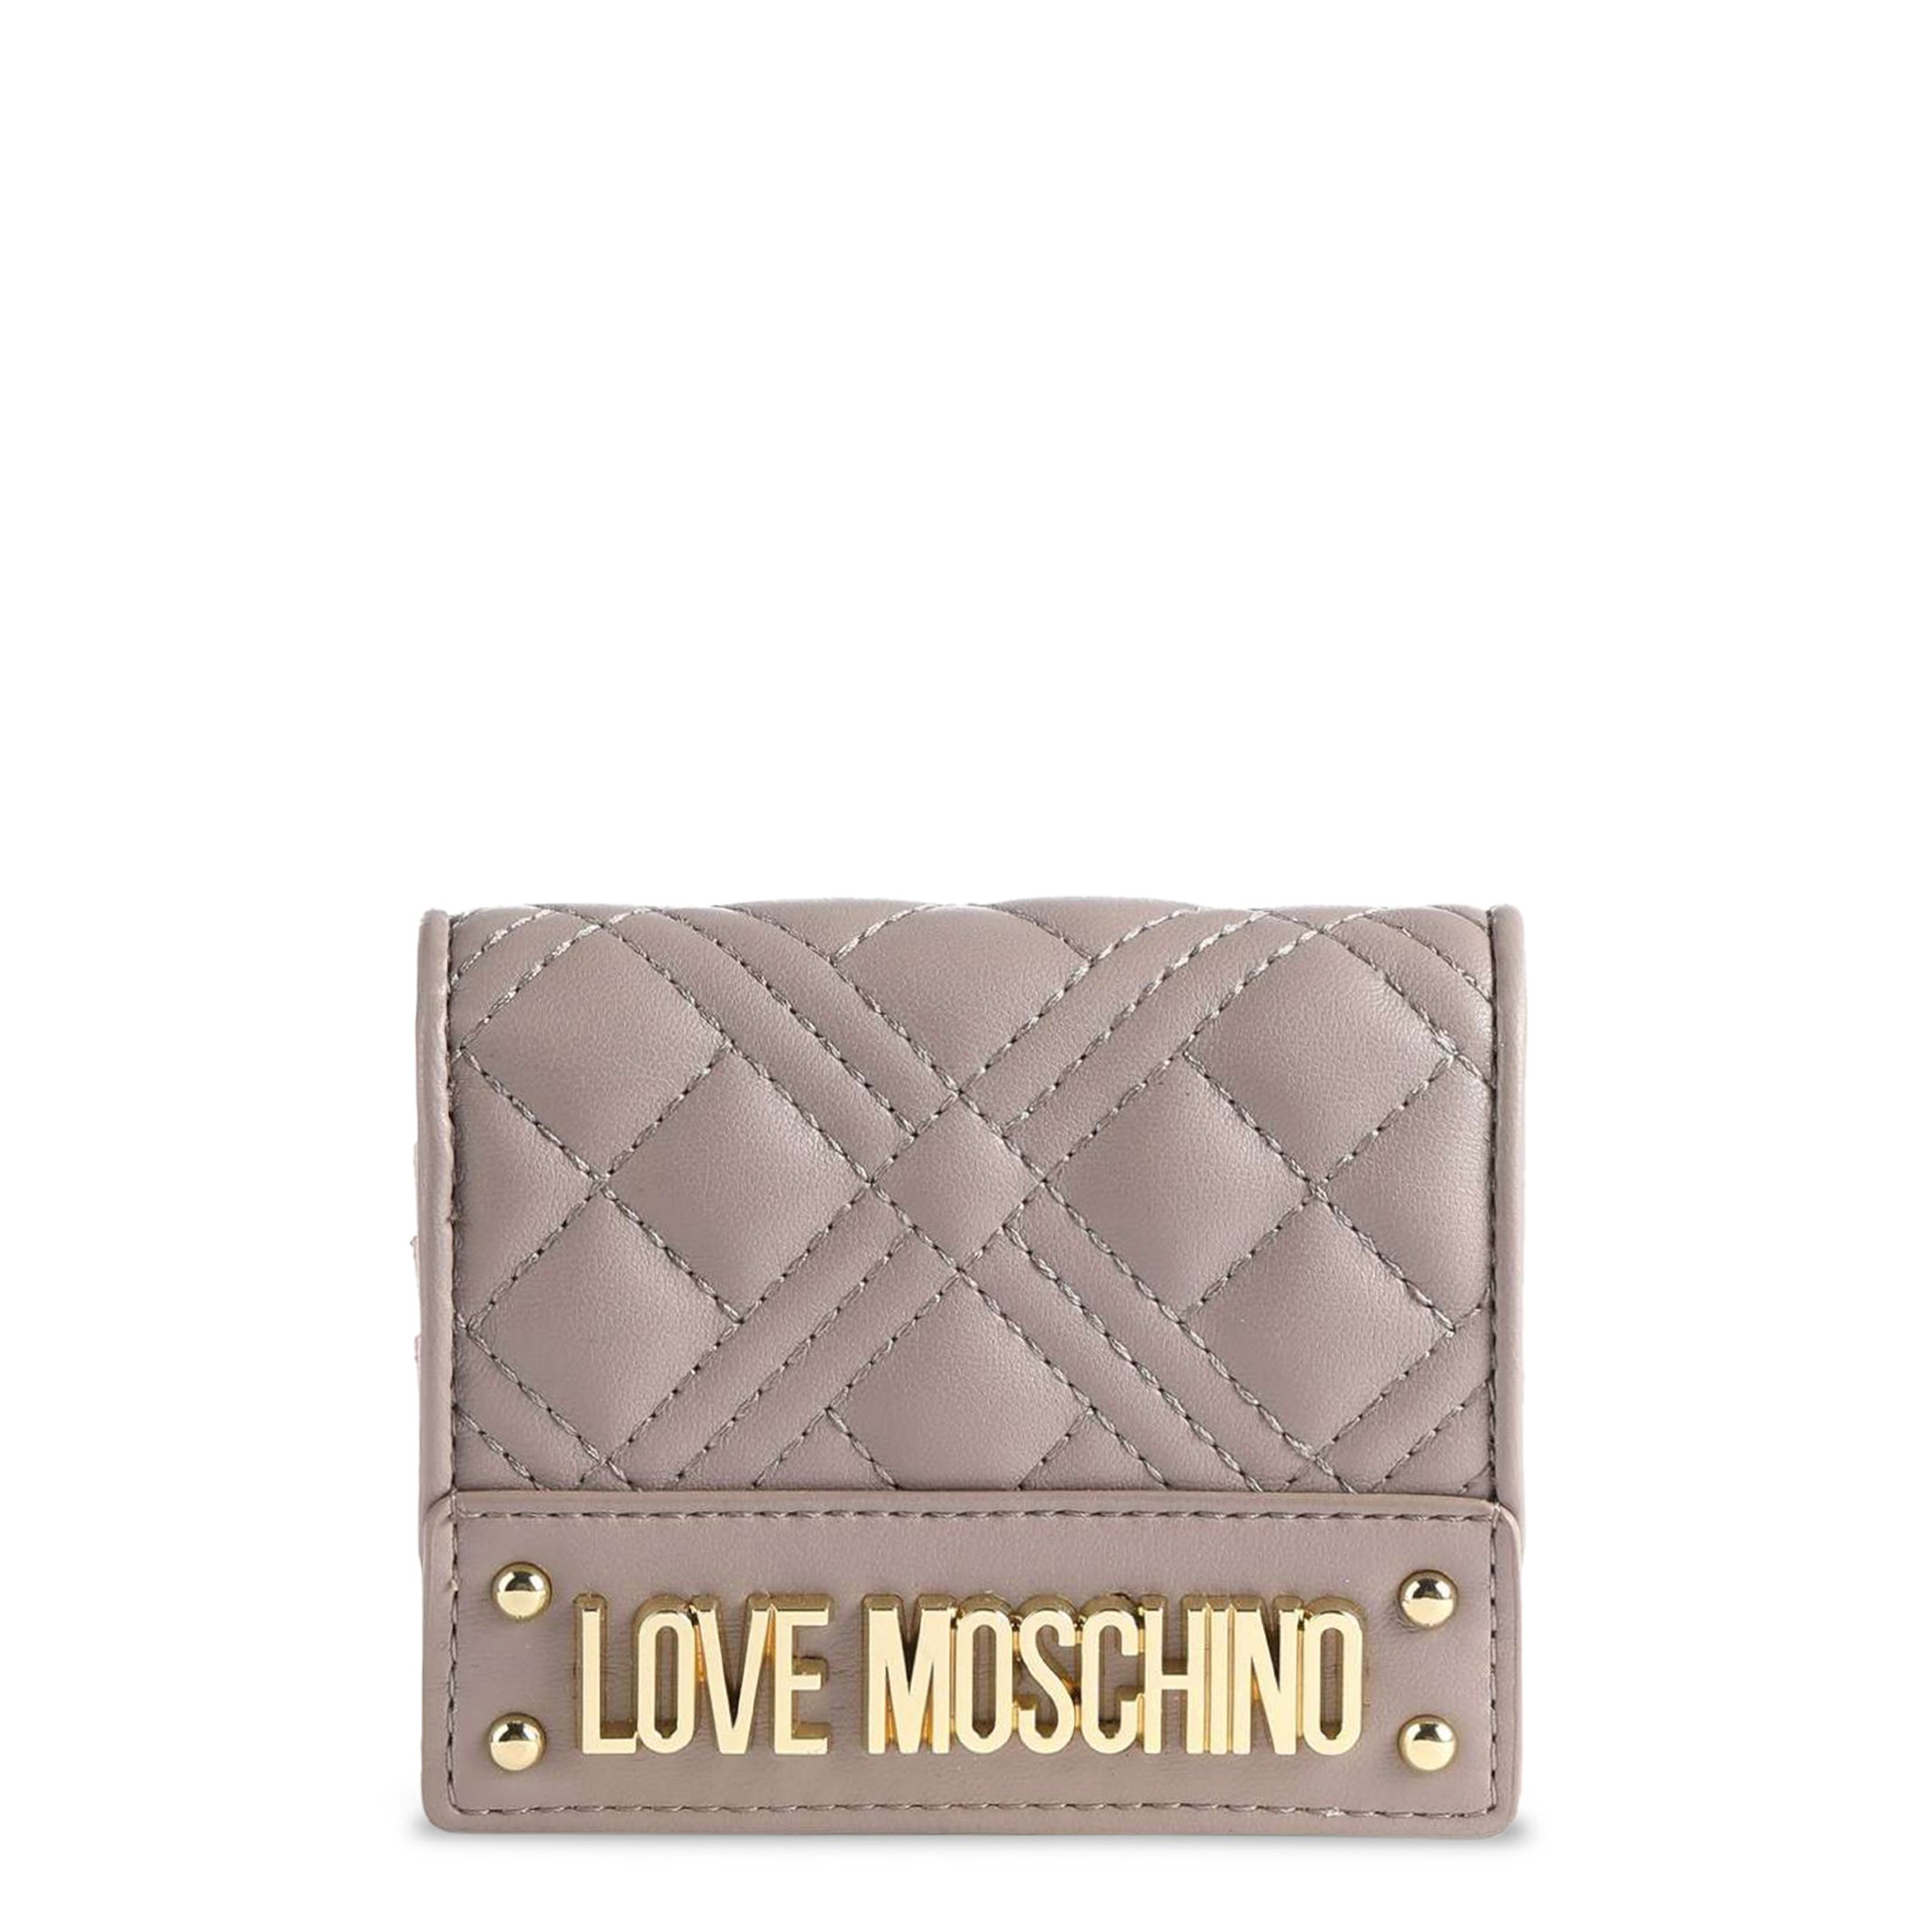 Love Moschino Women's Wallet Various Colours JC5601PP1DLA0 - grey NOSIZE